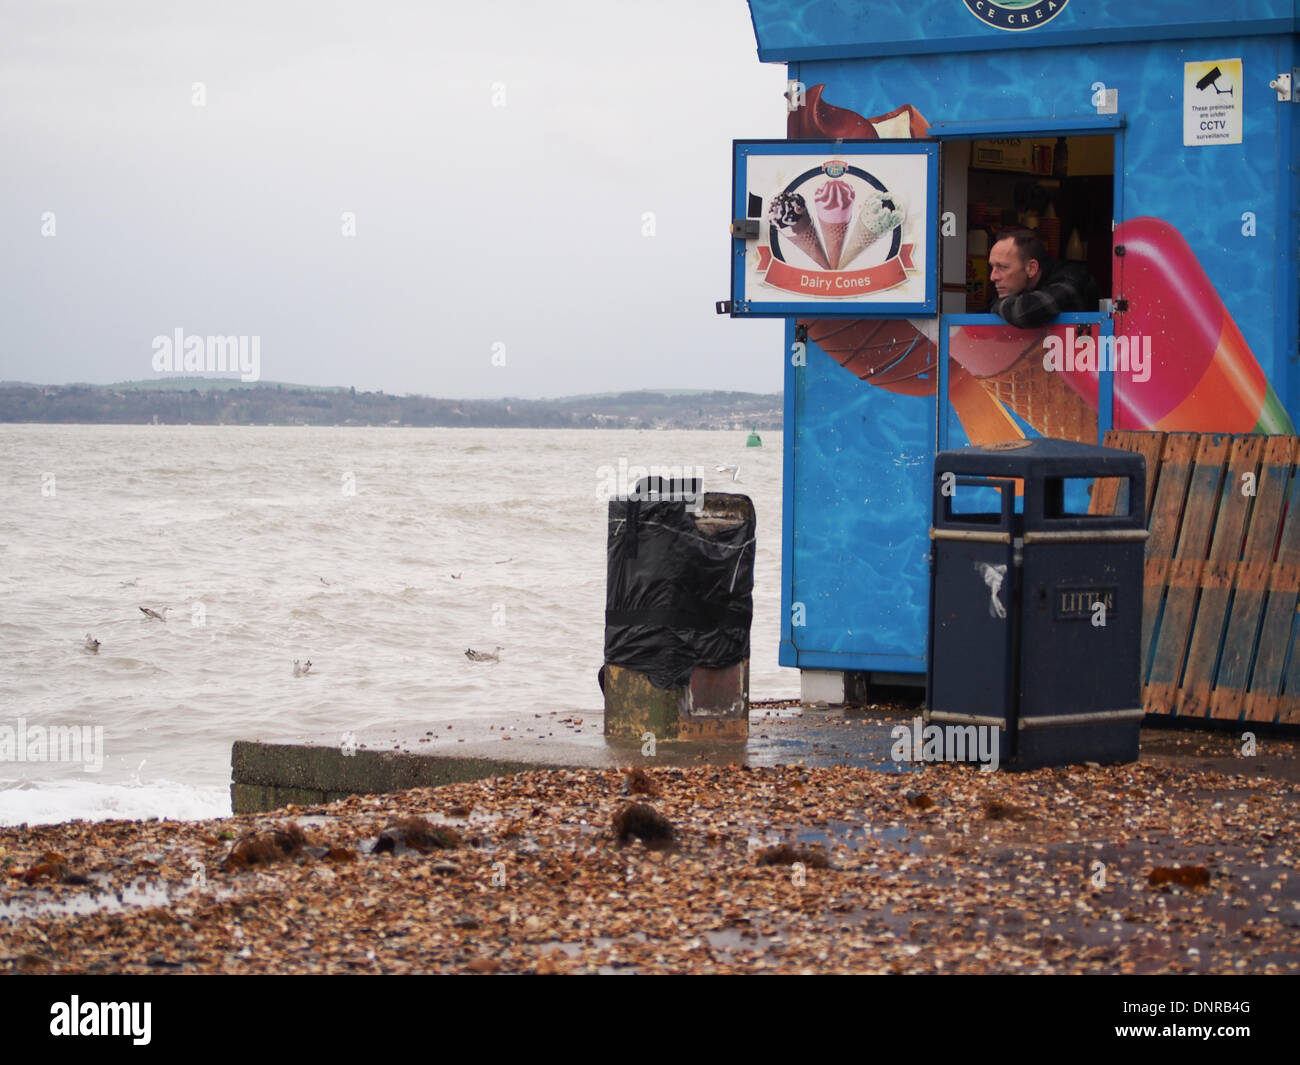 portsmouth-england-4th-january-2014-an-ice-cream-vendor-peers-out-DNRB4G.jpg